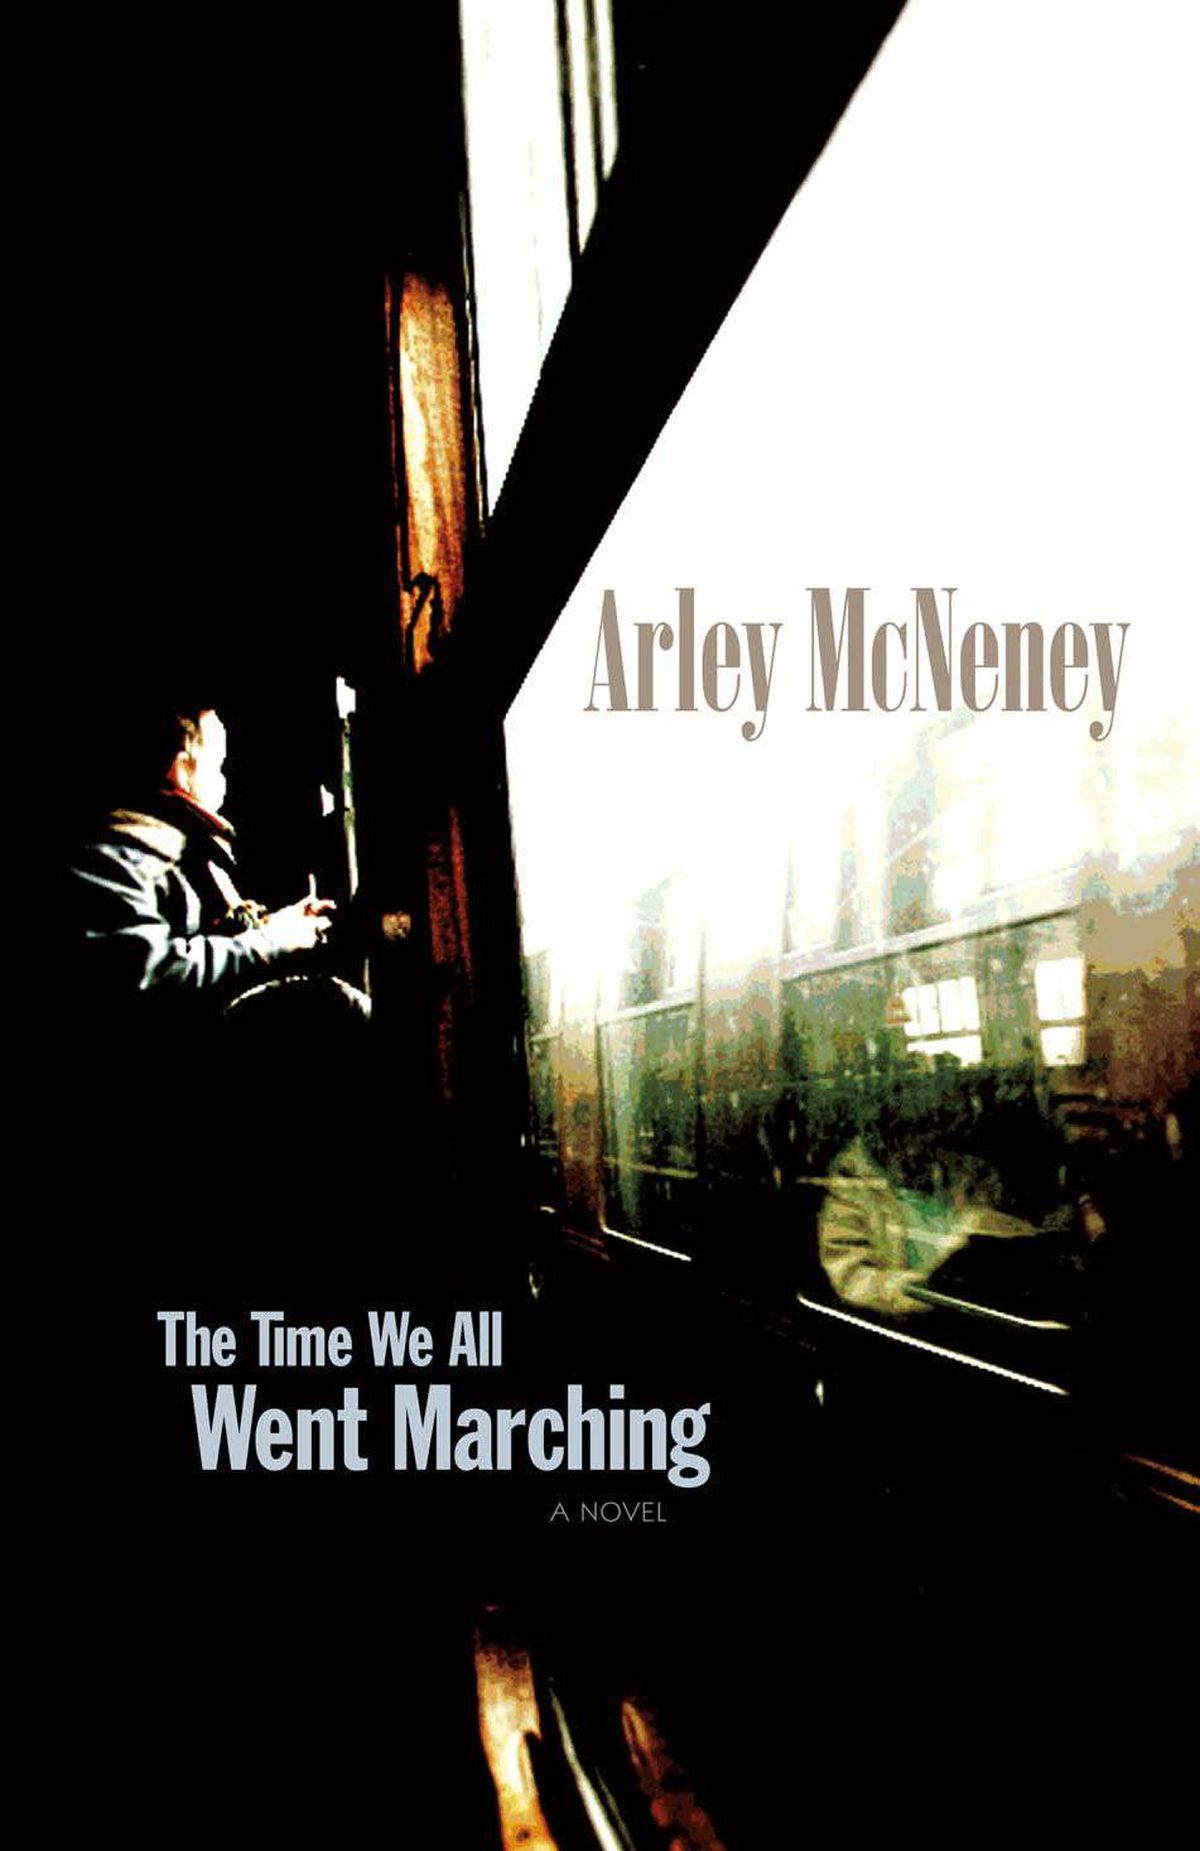 THE TIME WE ALL WENT MARCHING By Arley McNeney (Goose Lane) This small, beautiful book is filled with large themes. Edie and her four-year-old son, Belly, have boarded a train to B.C., leaving Belly's father passed out in their freezing apartment. On the train, Edie tells Slim's stories of Depression-era marches to Belly. McNeney layers these stories on Edie's story with great care. A stunning achievement. – Michelle Berry